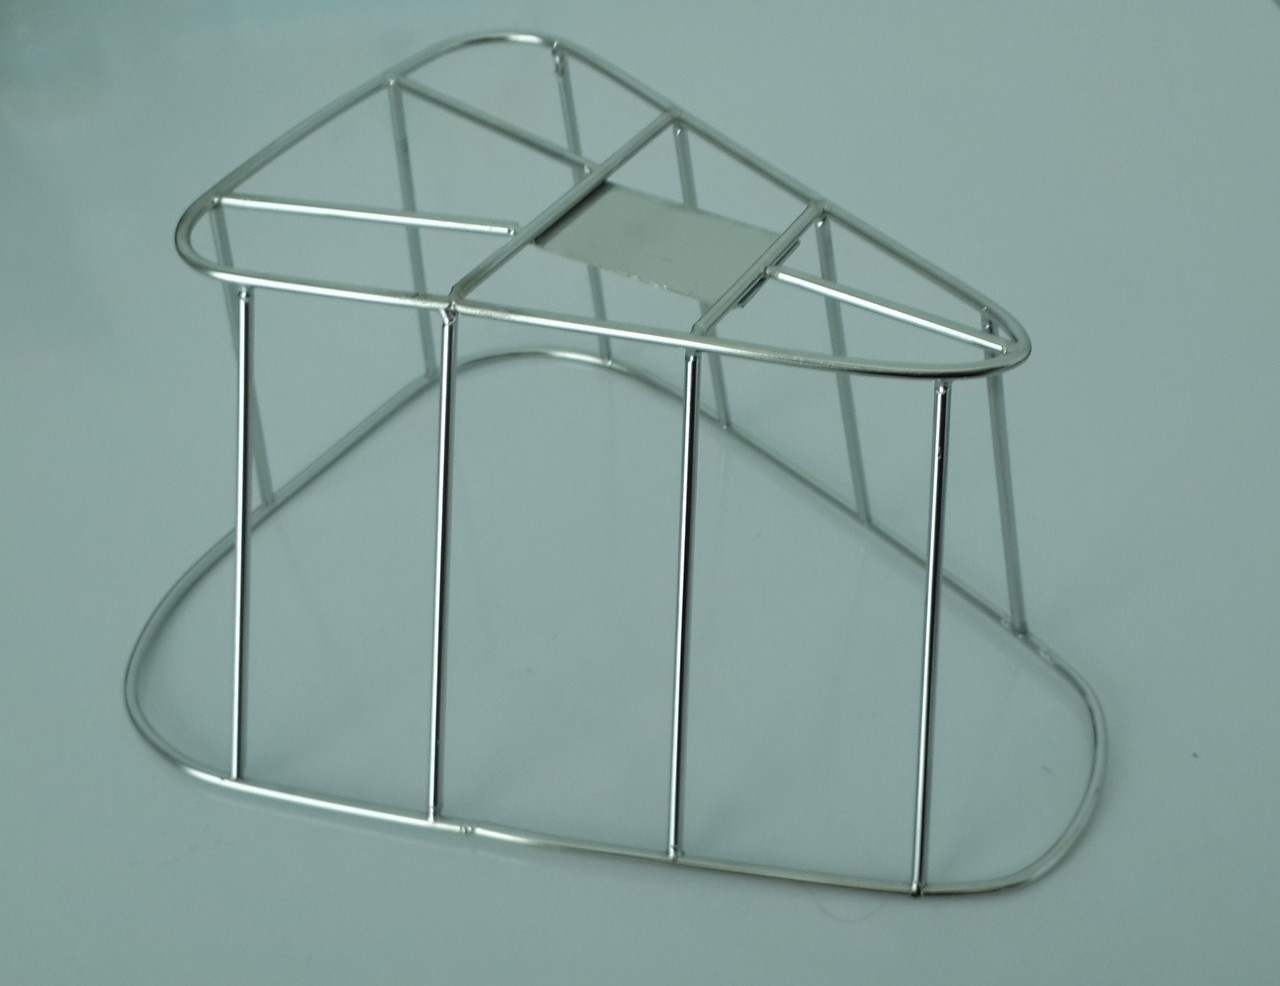 New Reproduction Stainless Steel Air Filter Cage that fits the 1982-1987 Maico